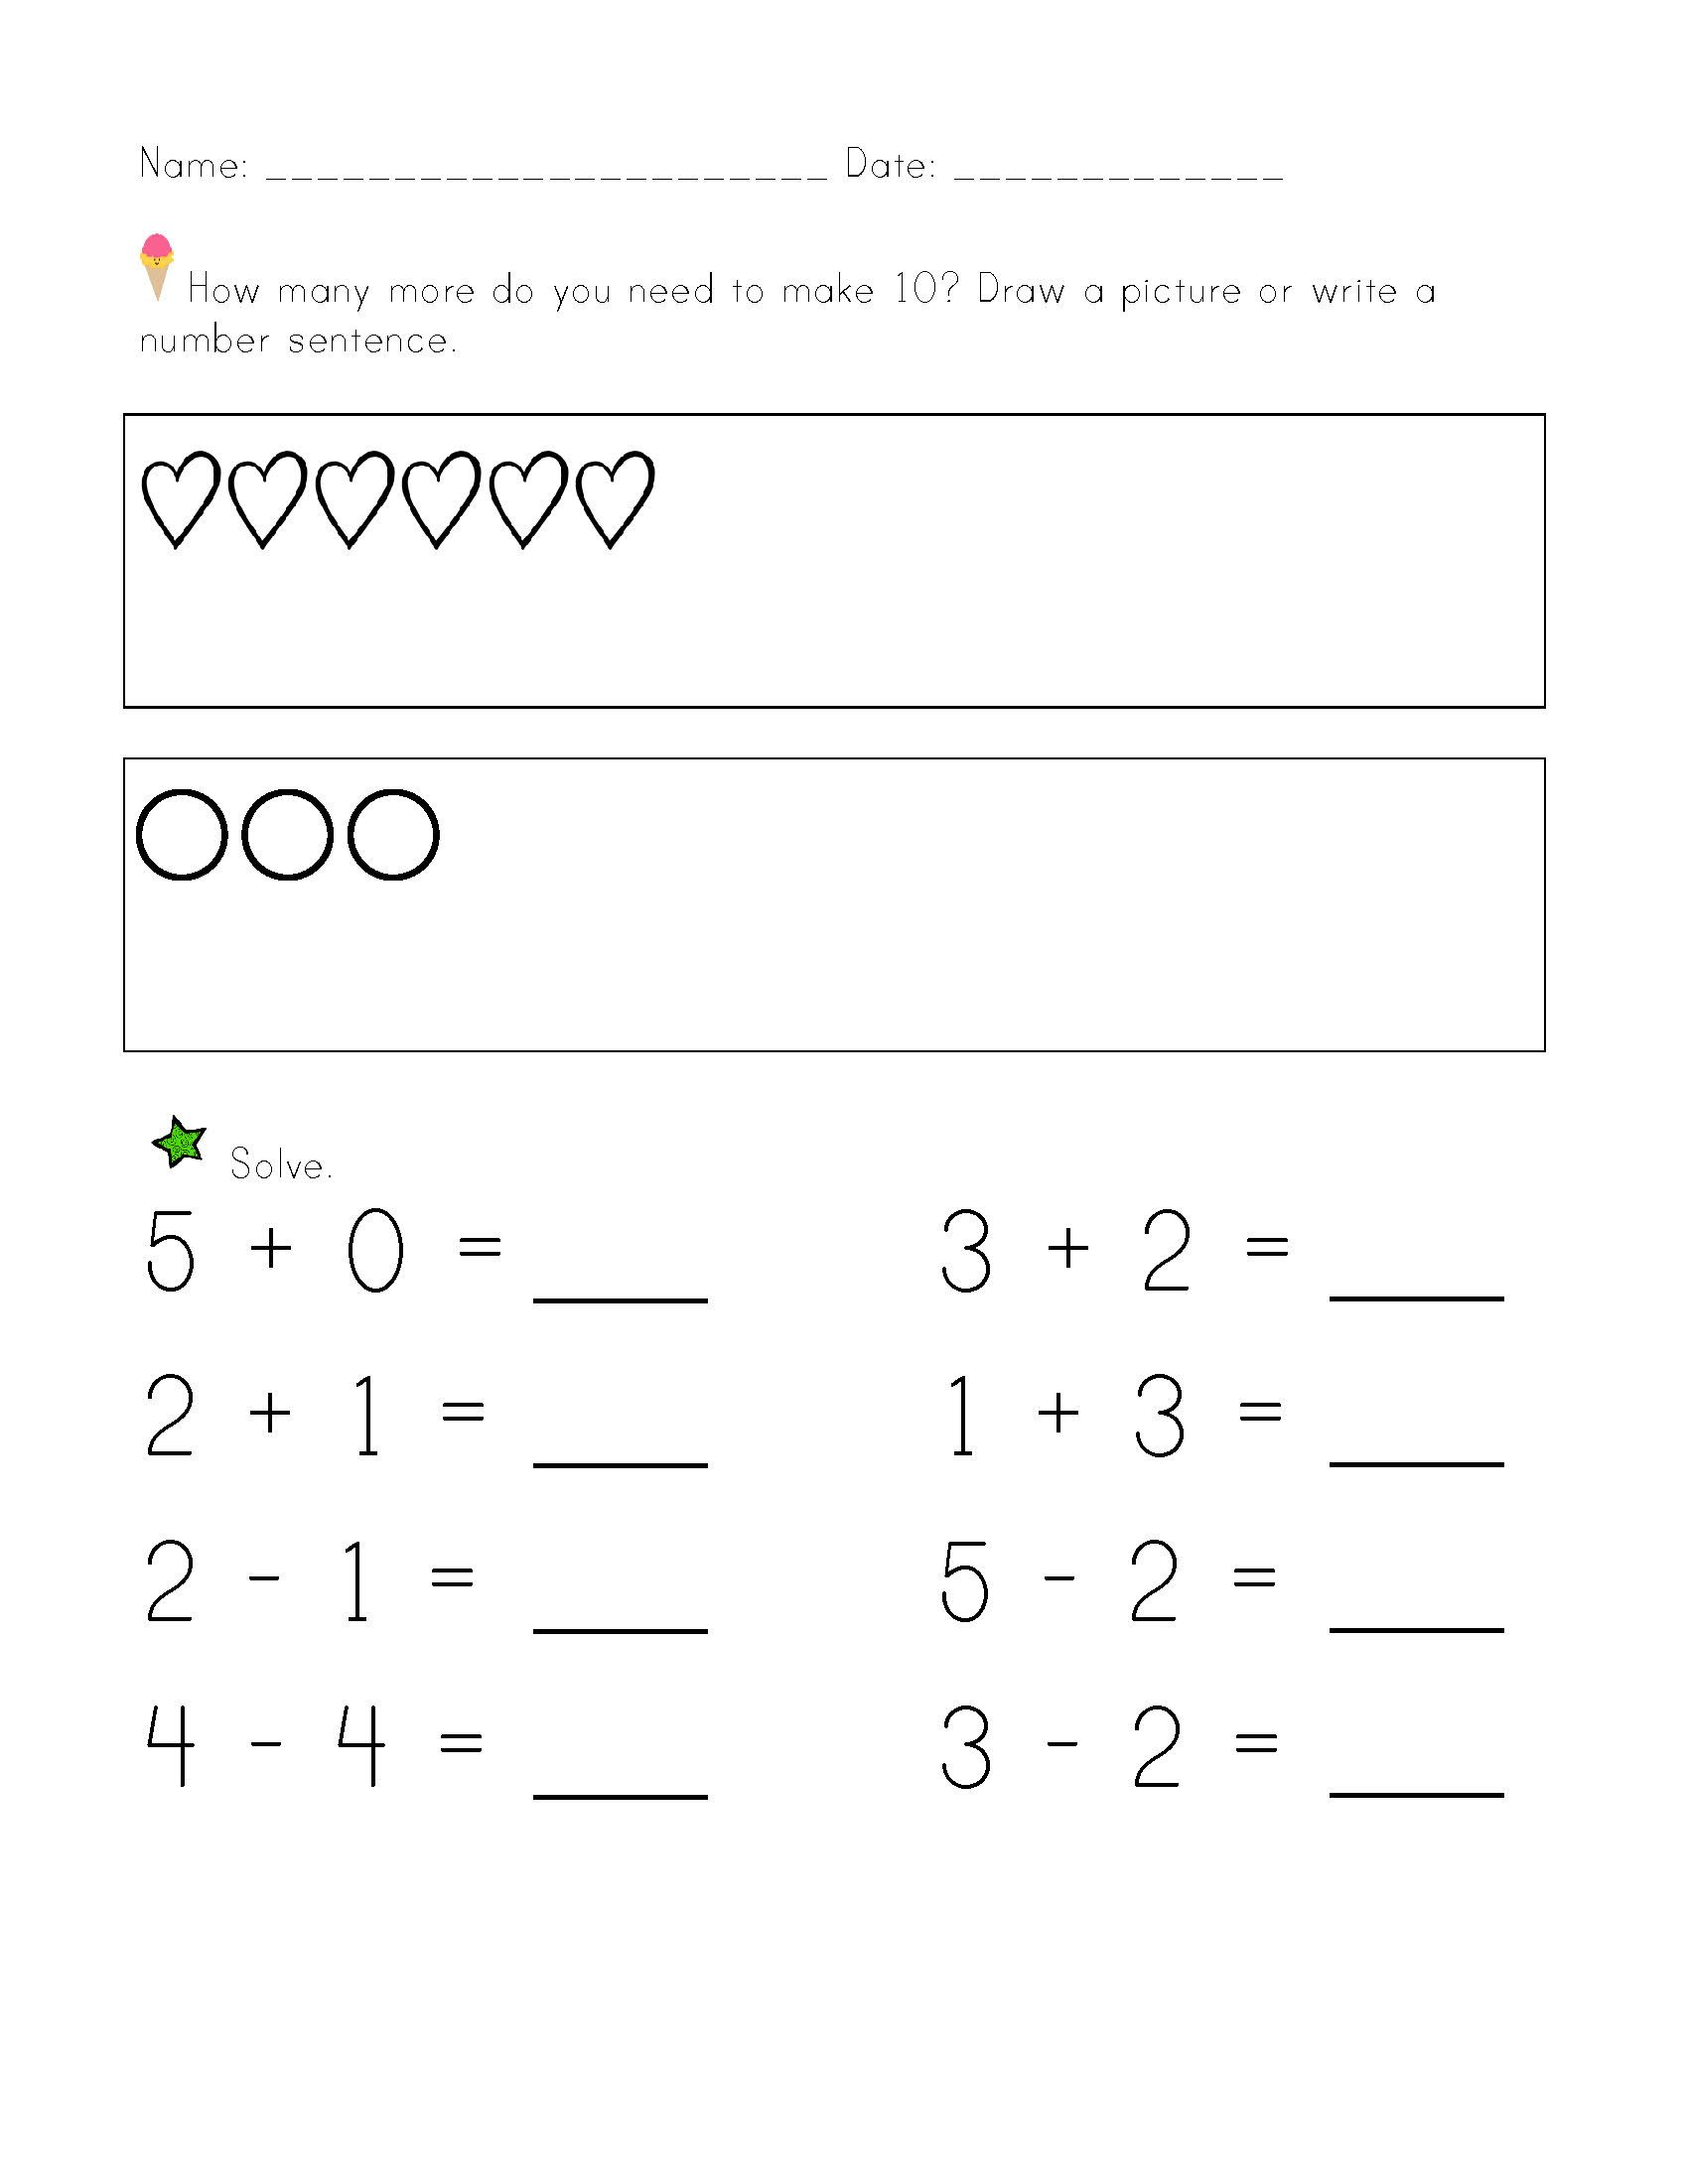 hight resolution of Algebraic Thinking Worksheets For Kindergarten   Printable Worksheets and  Activities for Teachers